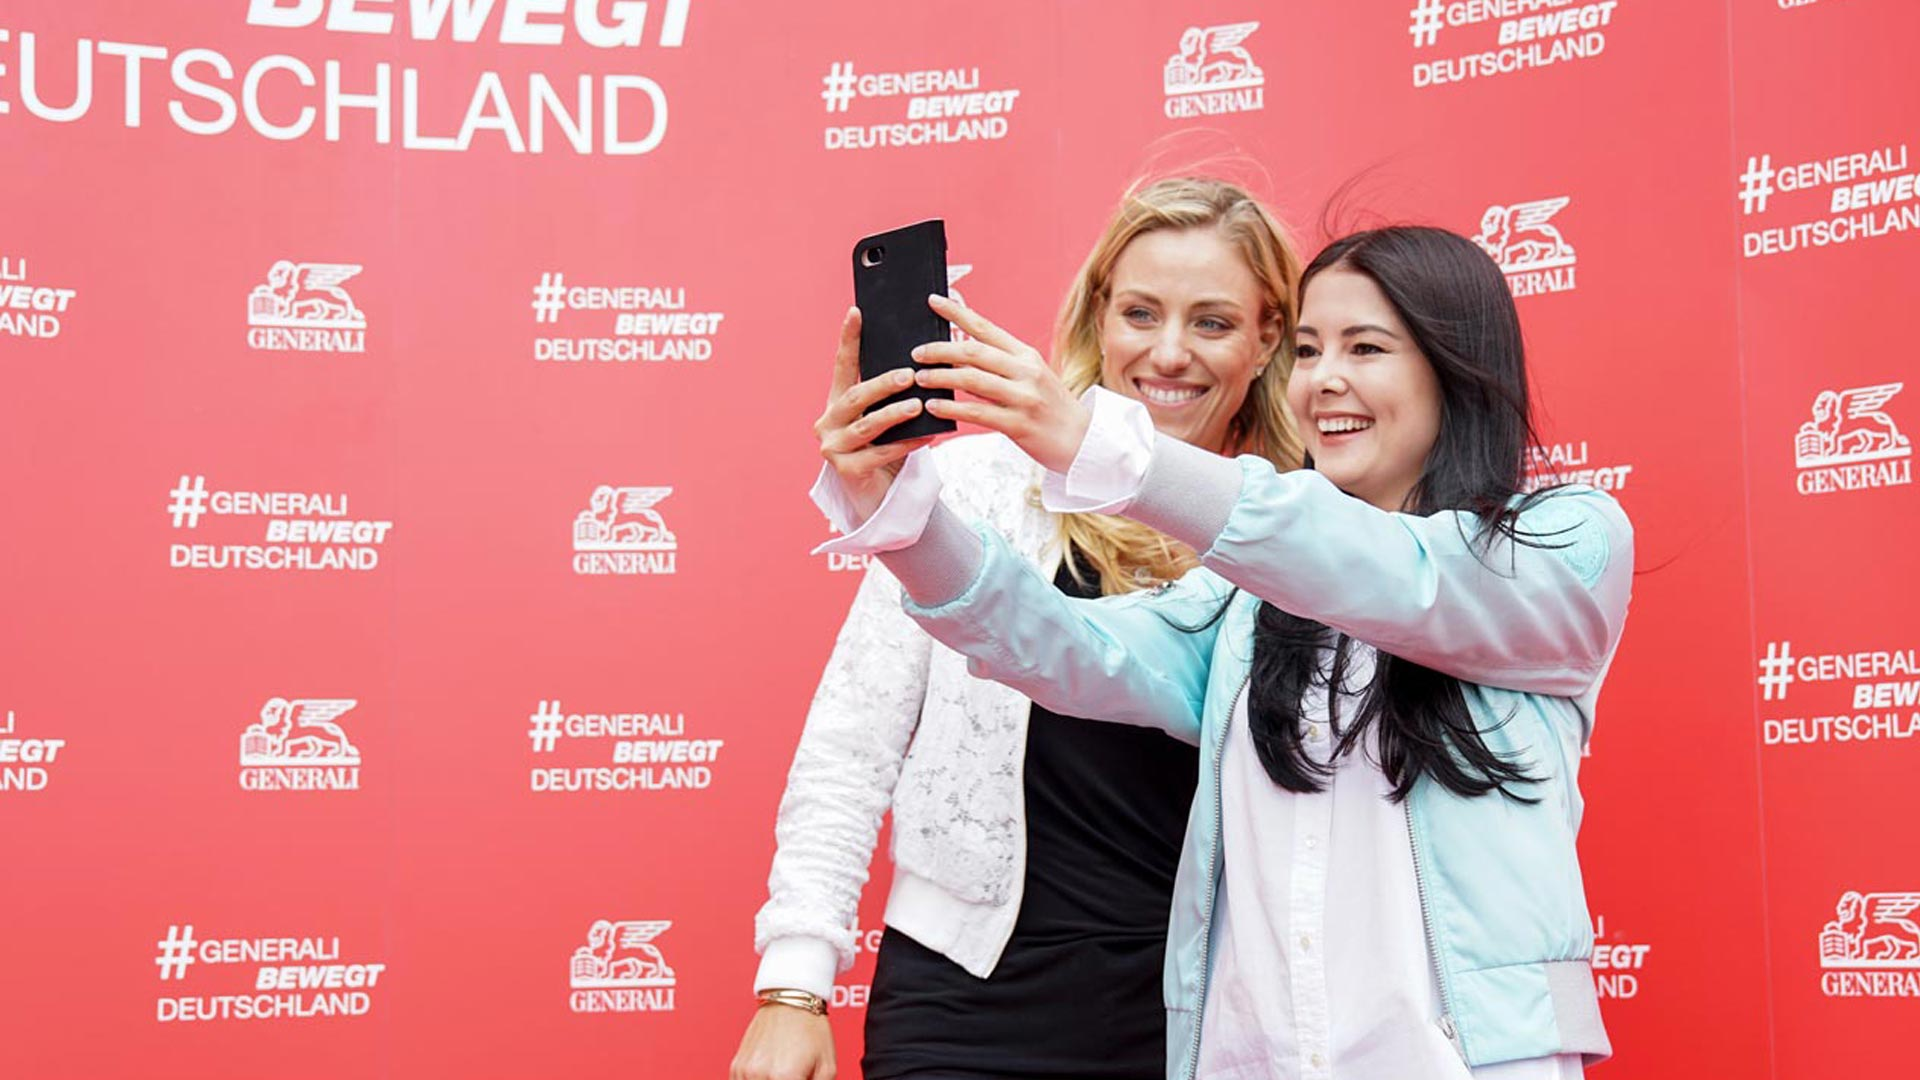 Influencer Event! Angelique Kerber überreicht #1 Sport Influencer Award an Pamela Reif!